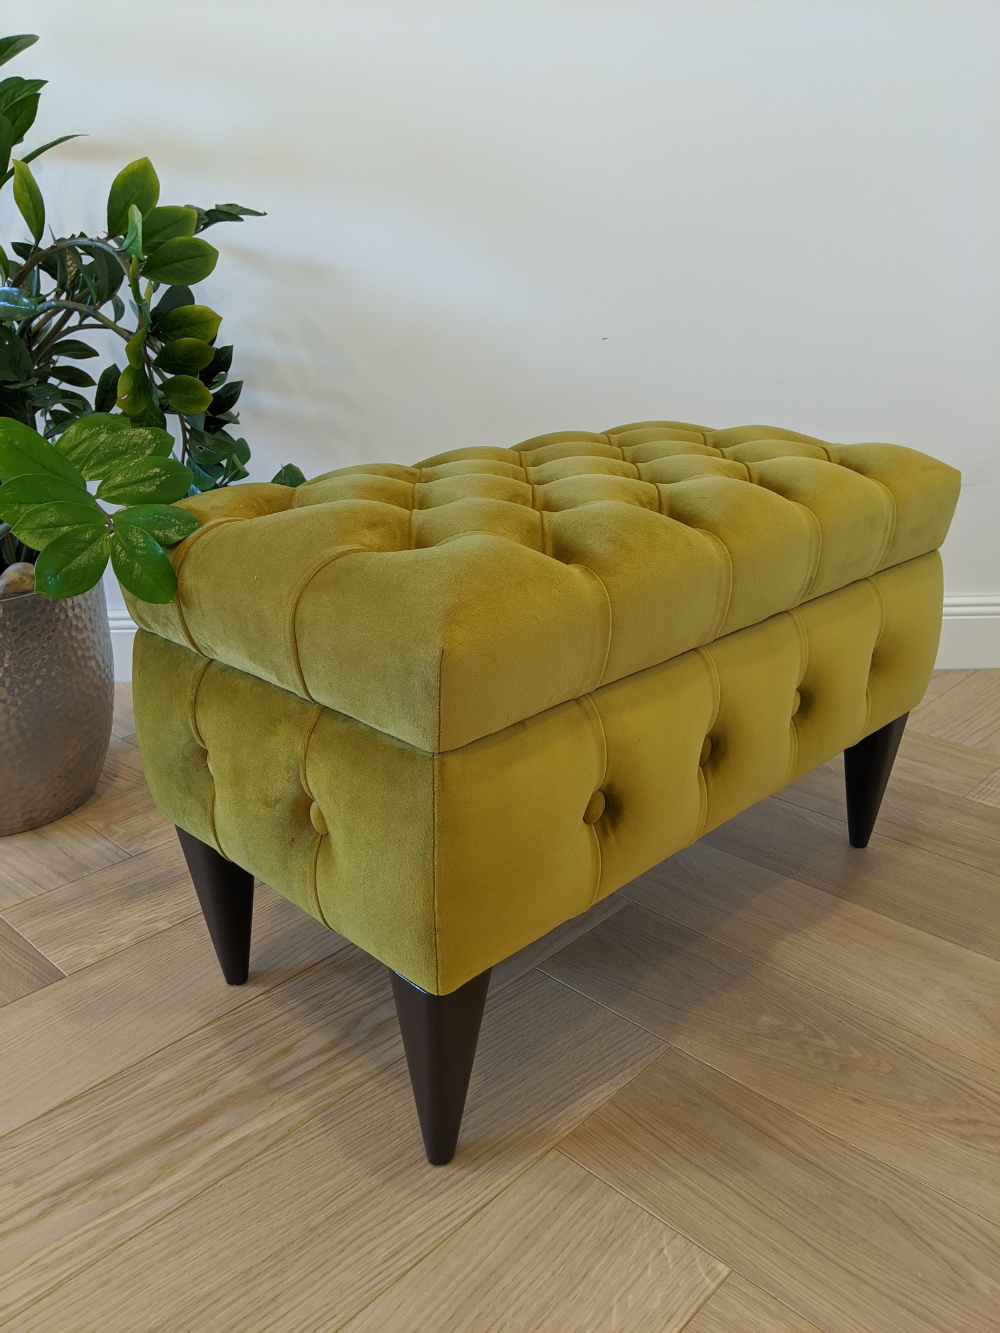 Mustard Yellow Chesterfield Ottoman With Storage Box Entryway Bench Velvet Bench With Storage Mustard Yellow Ottoman In 2020 Yellow Ottoman Storage Ottoman Dressing Room Decor